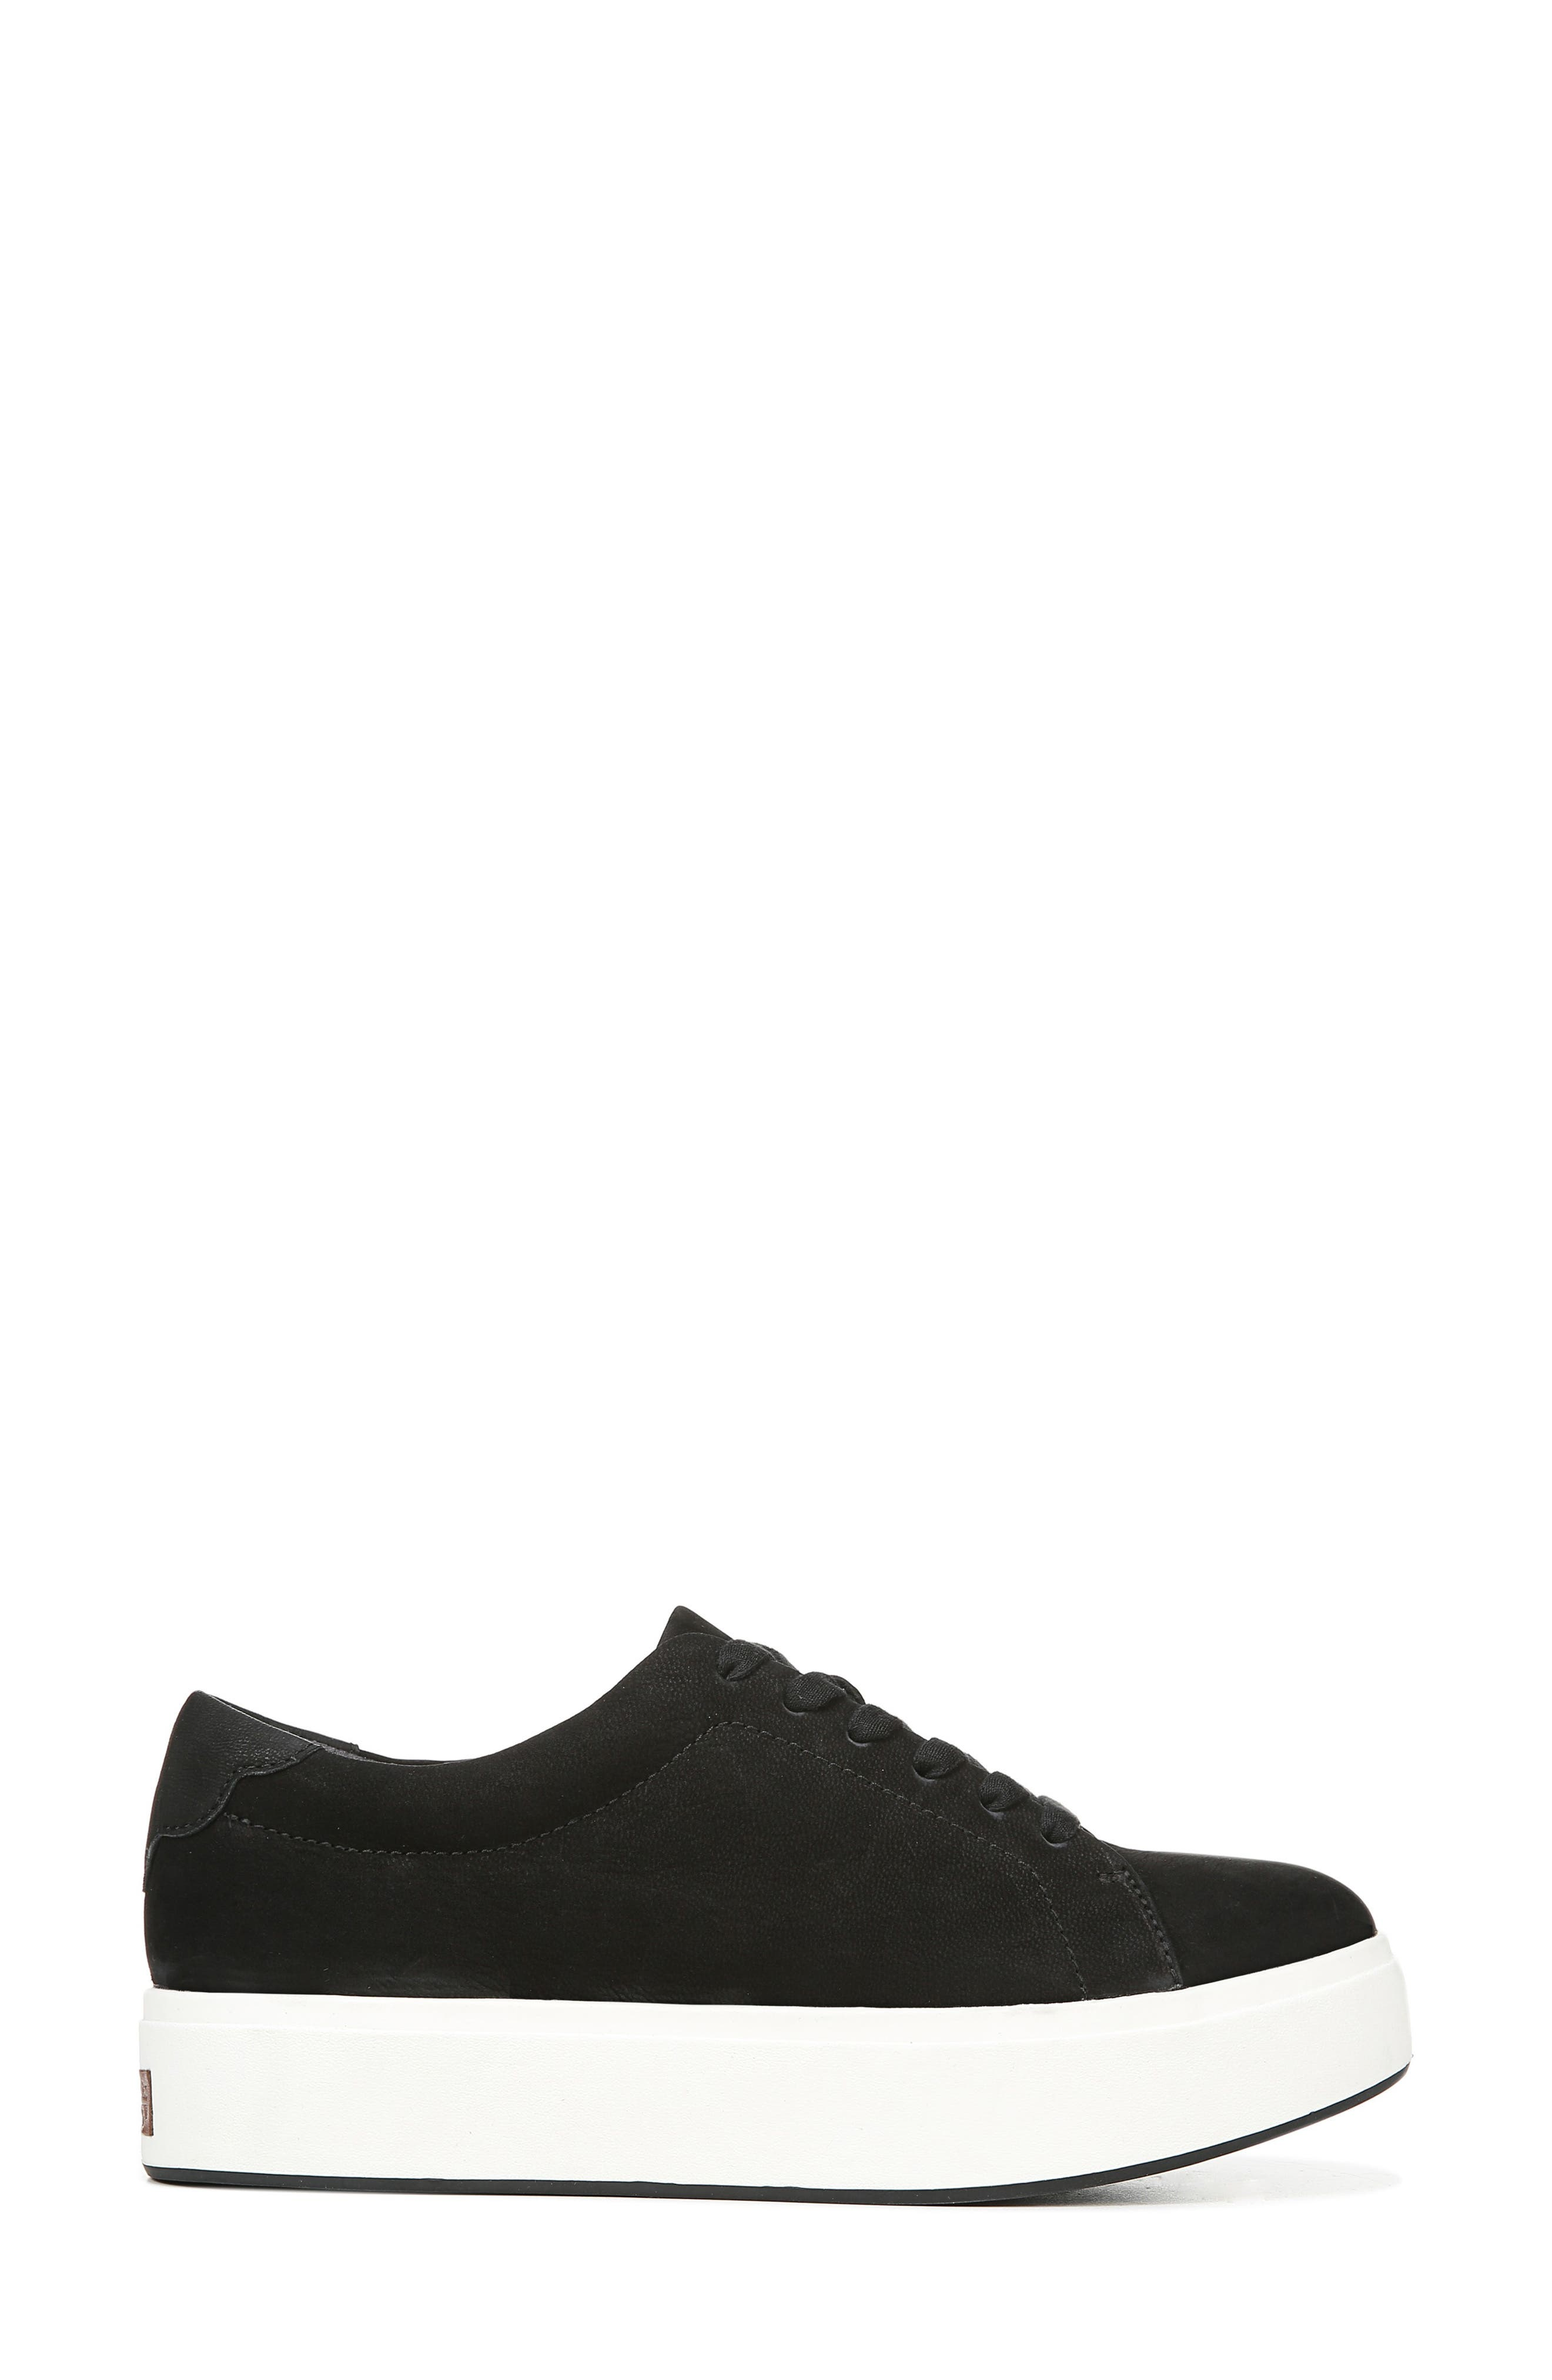 DR. SCHOLL'S, Abbot Luxe Platform Sneaker, Alternate thumbnail 3, color, BLACK SUEDE